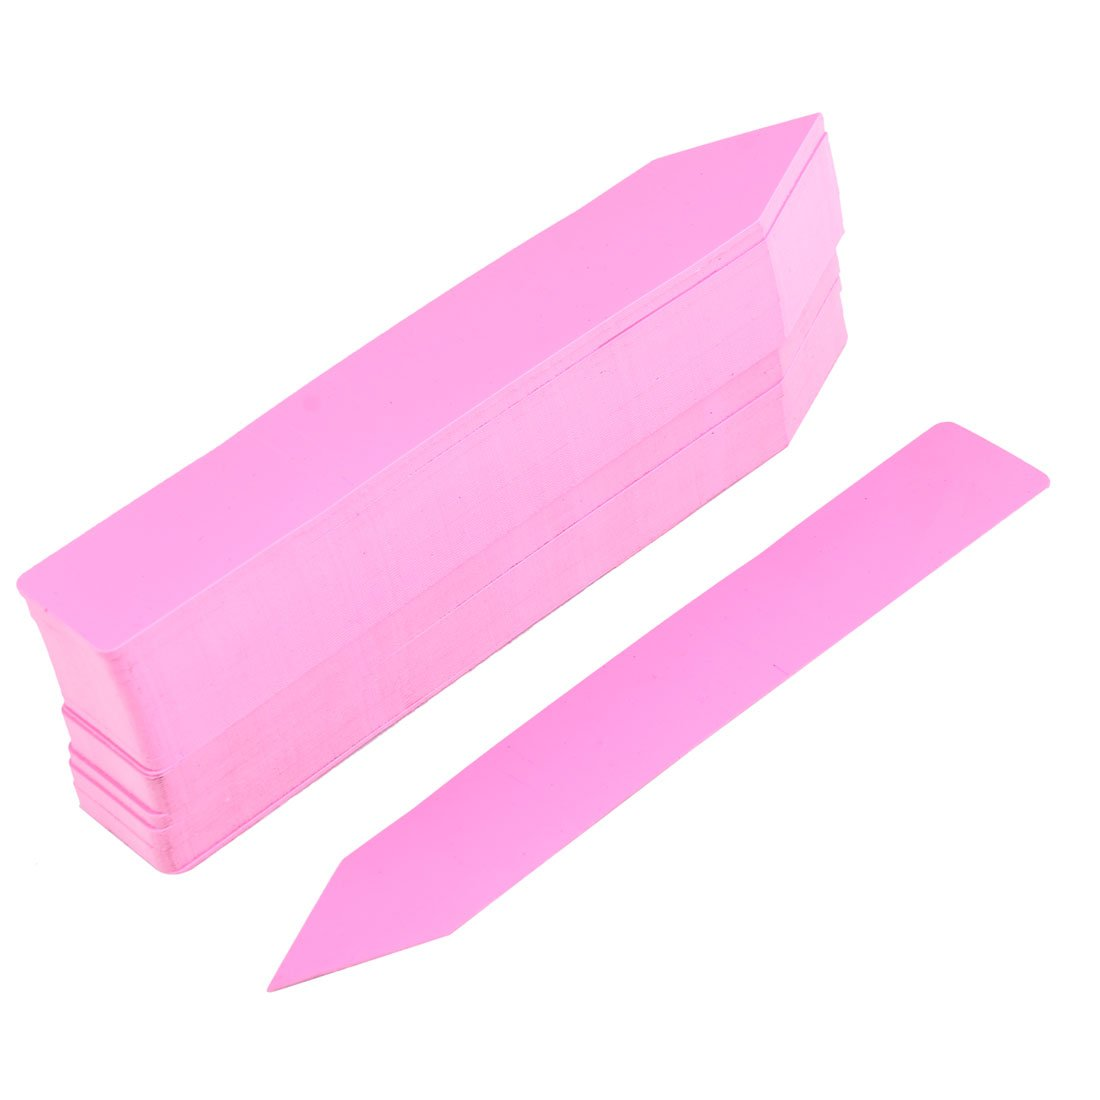 uxcell Plastic Windowsill Succulent Plant Cactus Roses Name Marking Sign Label 100 Pcs Pink